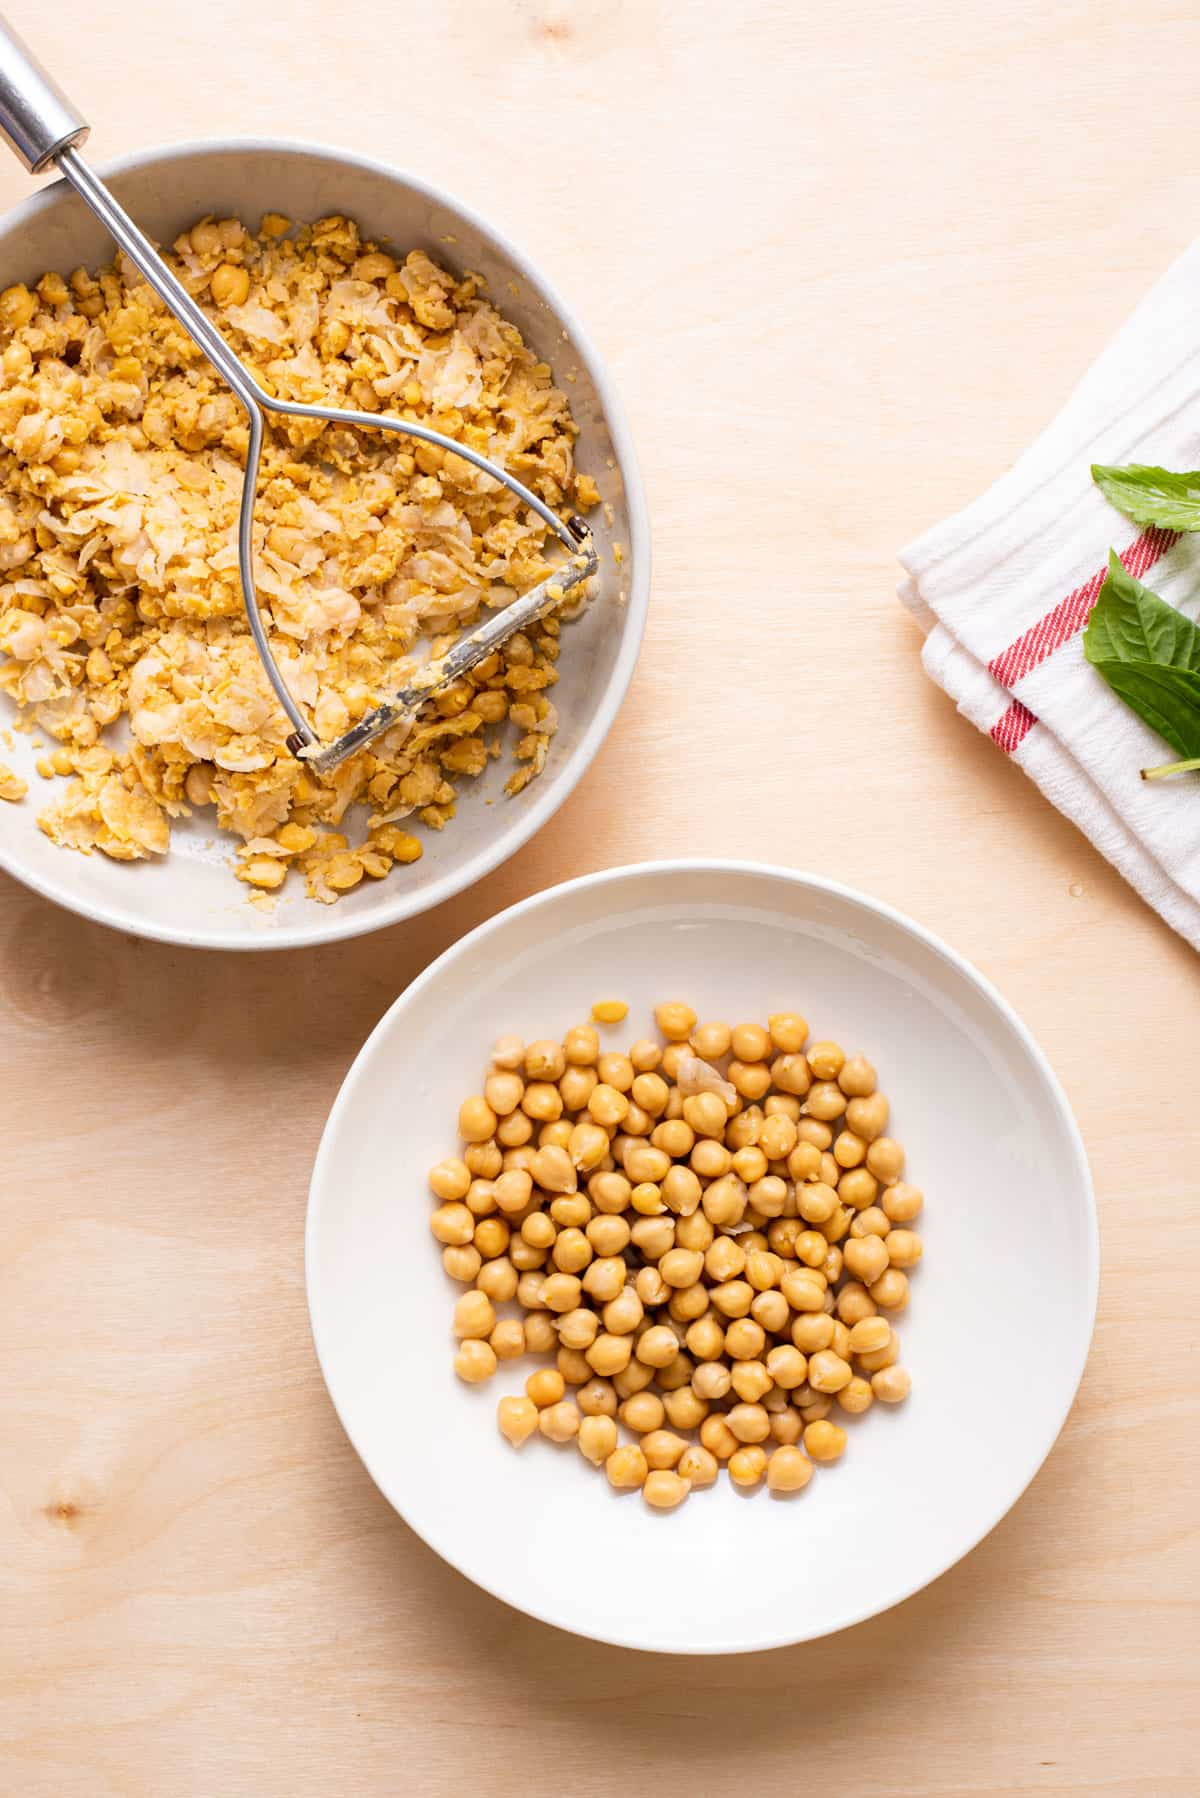 Whole and mashed chickpeas in two bowls.